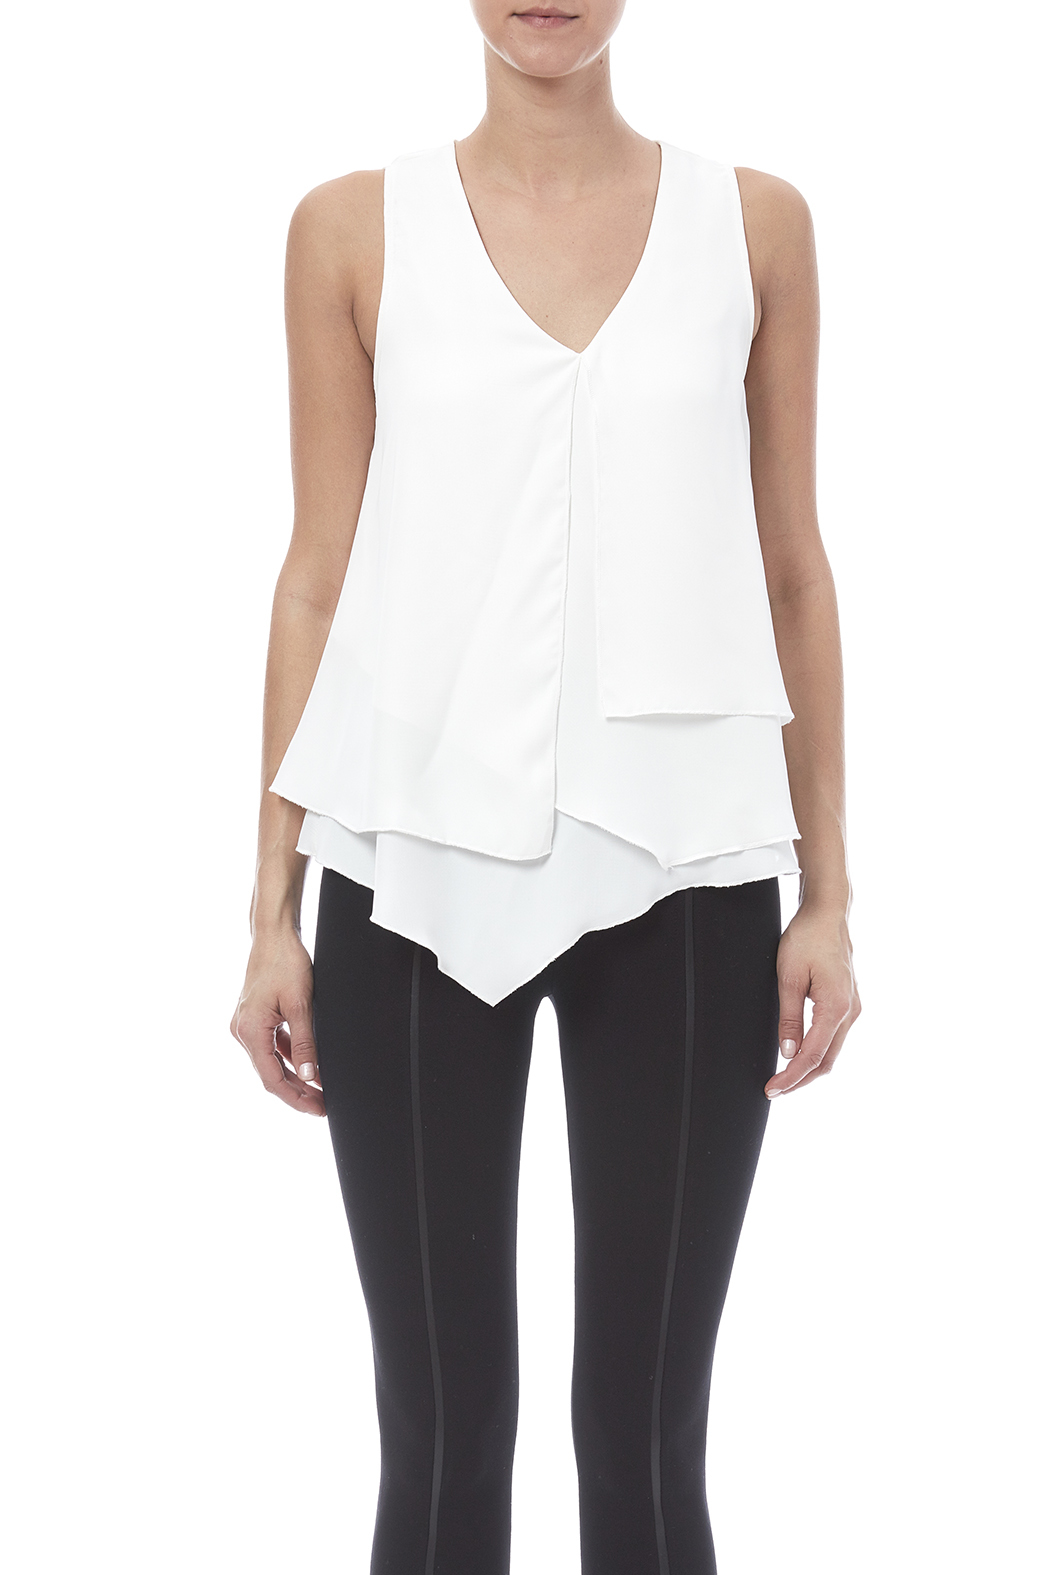 HYFVE Layered Look Blouse - Side Cropped Image